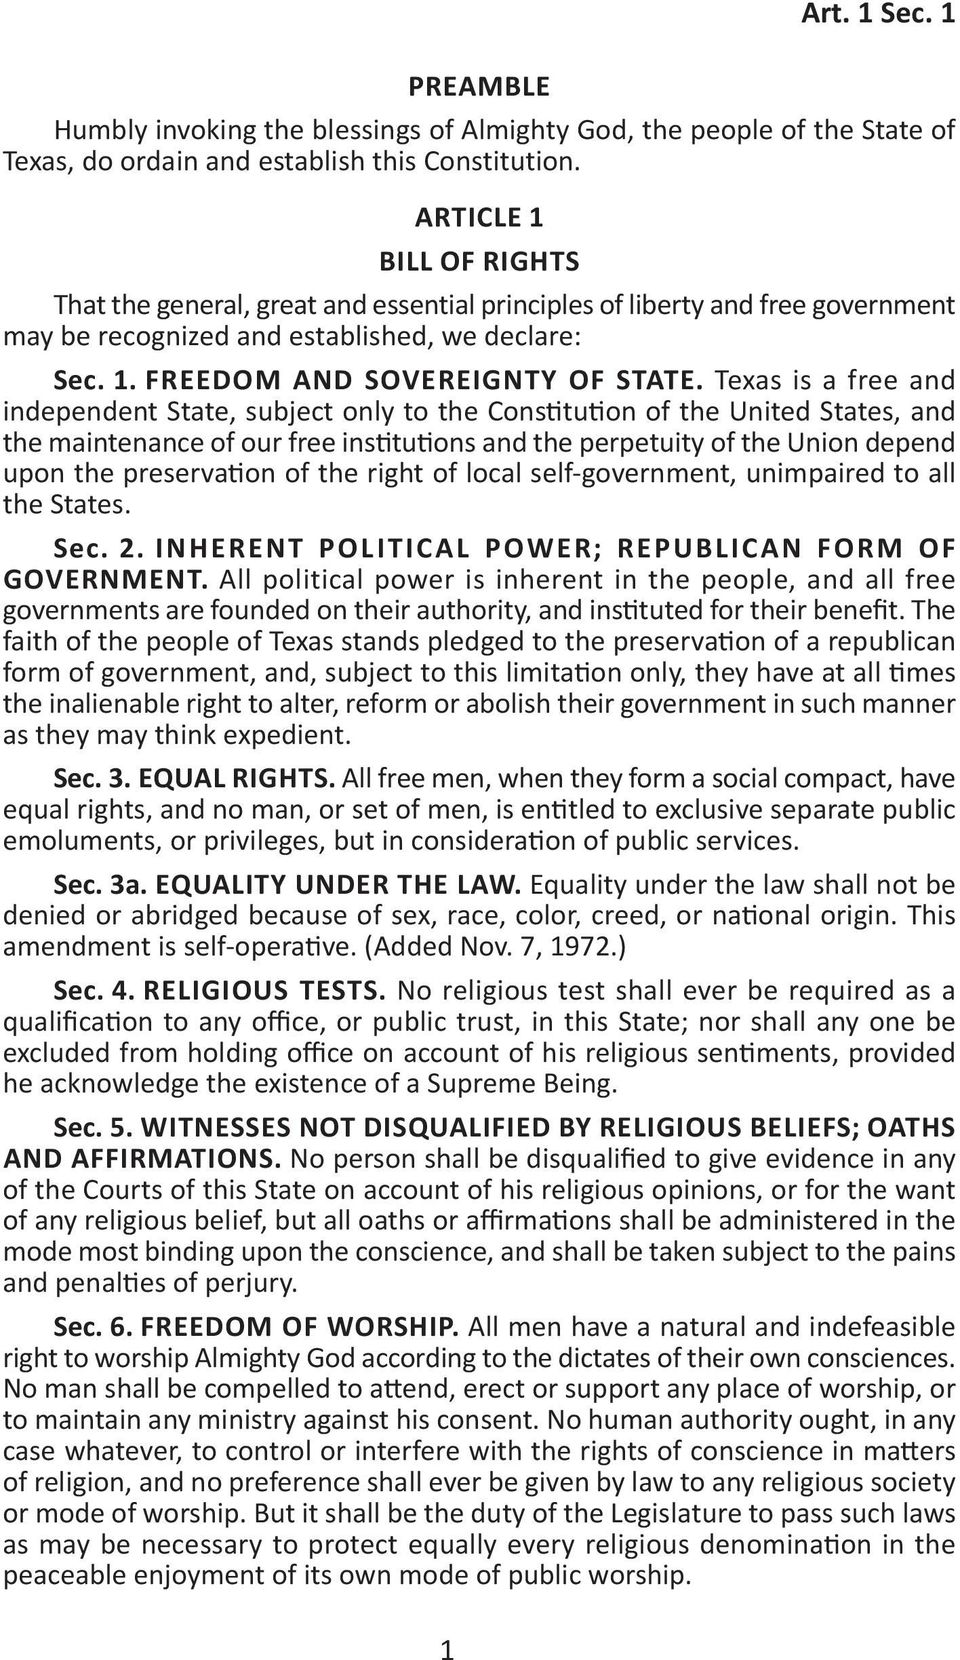 Texas is a free and independent State, subject only to the Constitution of the United States, and the maintenance of our free institutions and the perpetuity of the Union depend upon the preservation